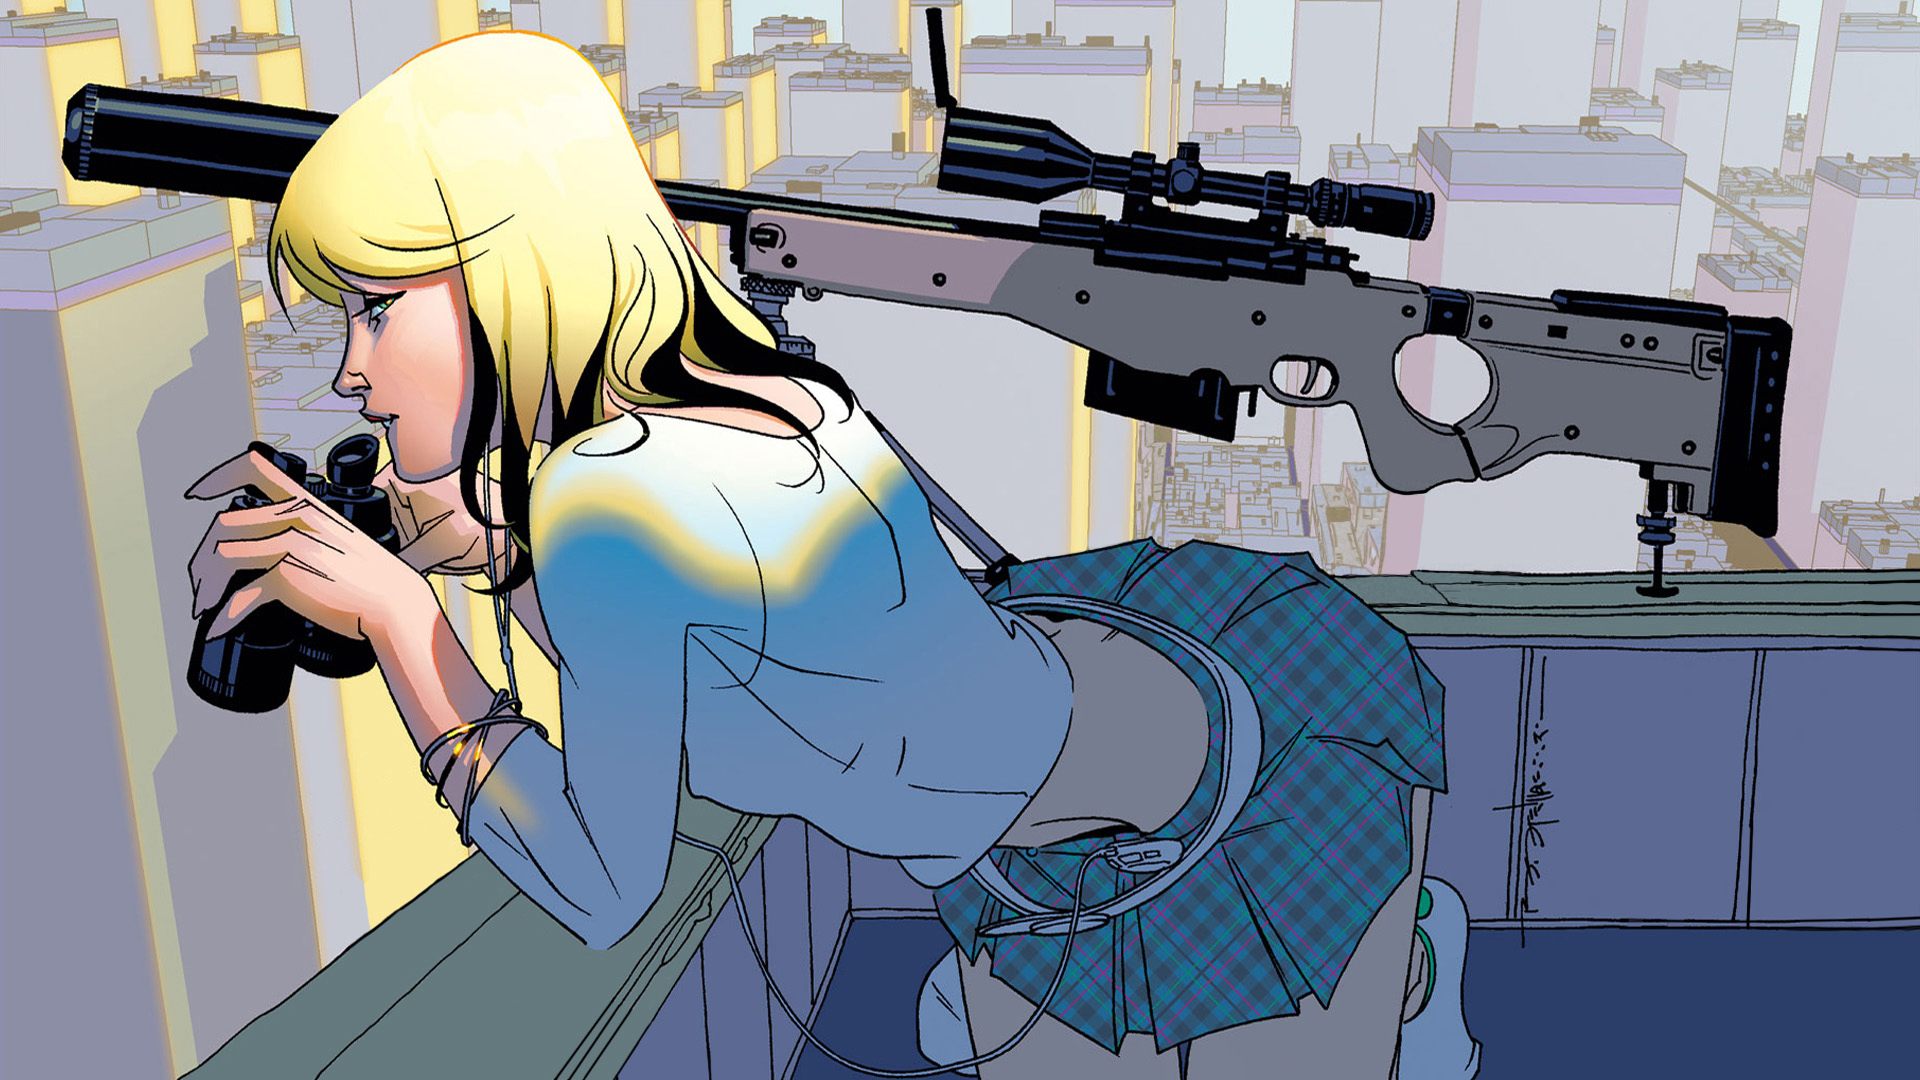 blondes sniper rifles rooftops HD Wallpaper